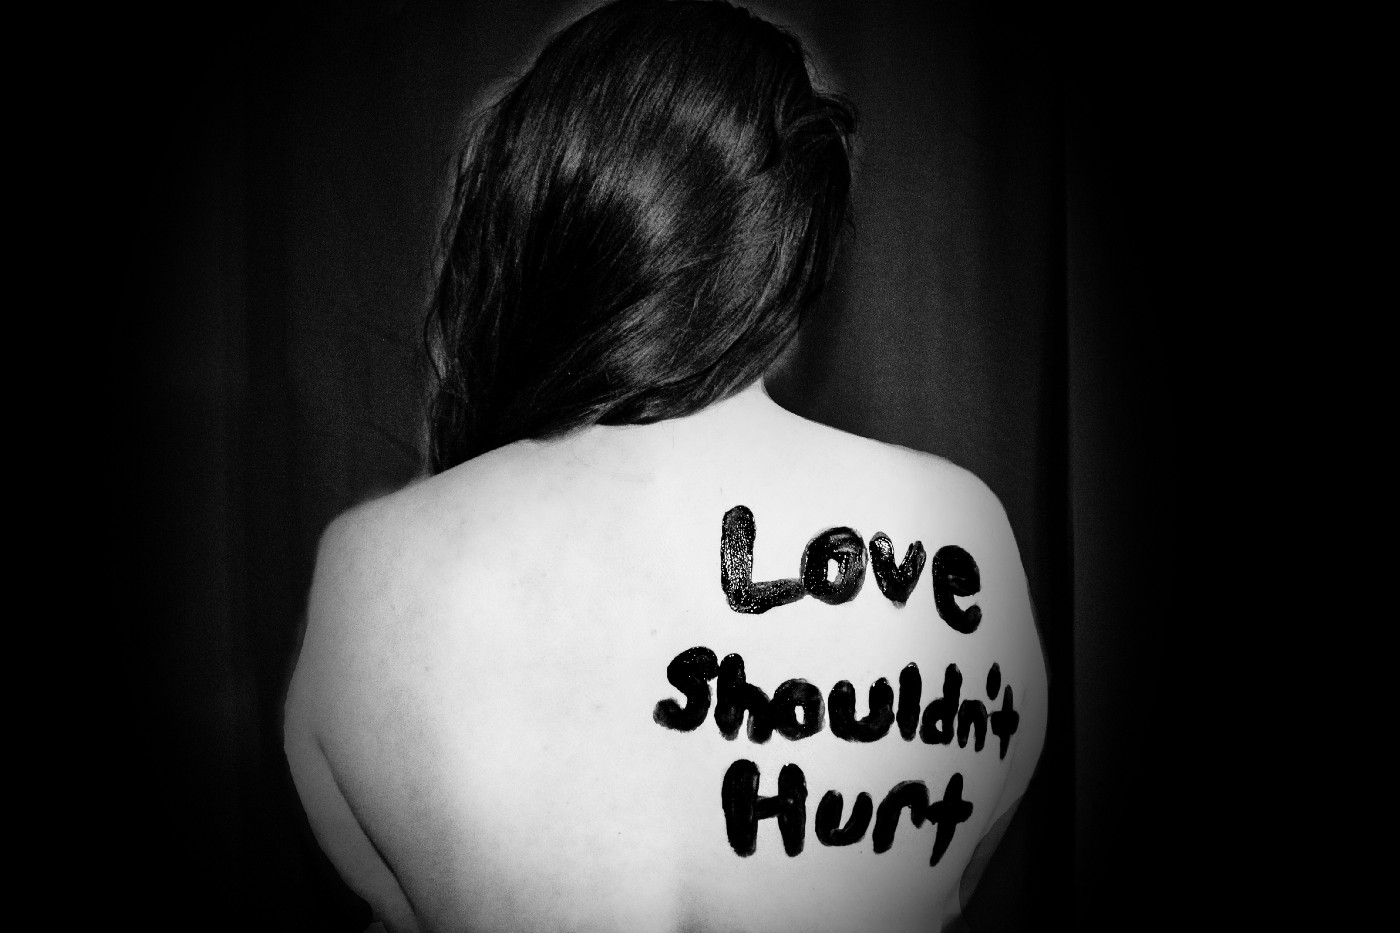 A black and white image of a woman with Love Shouldn't Hurt written in black paint on her bare naked back.